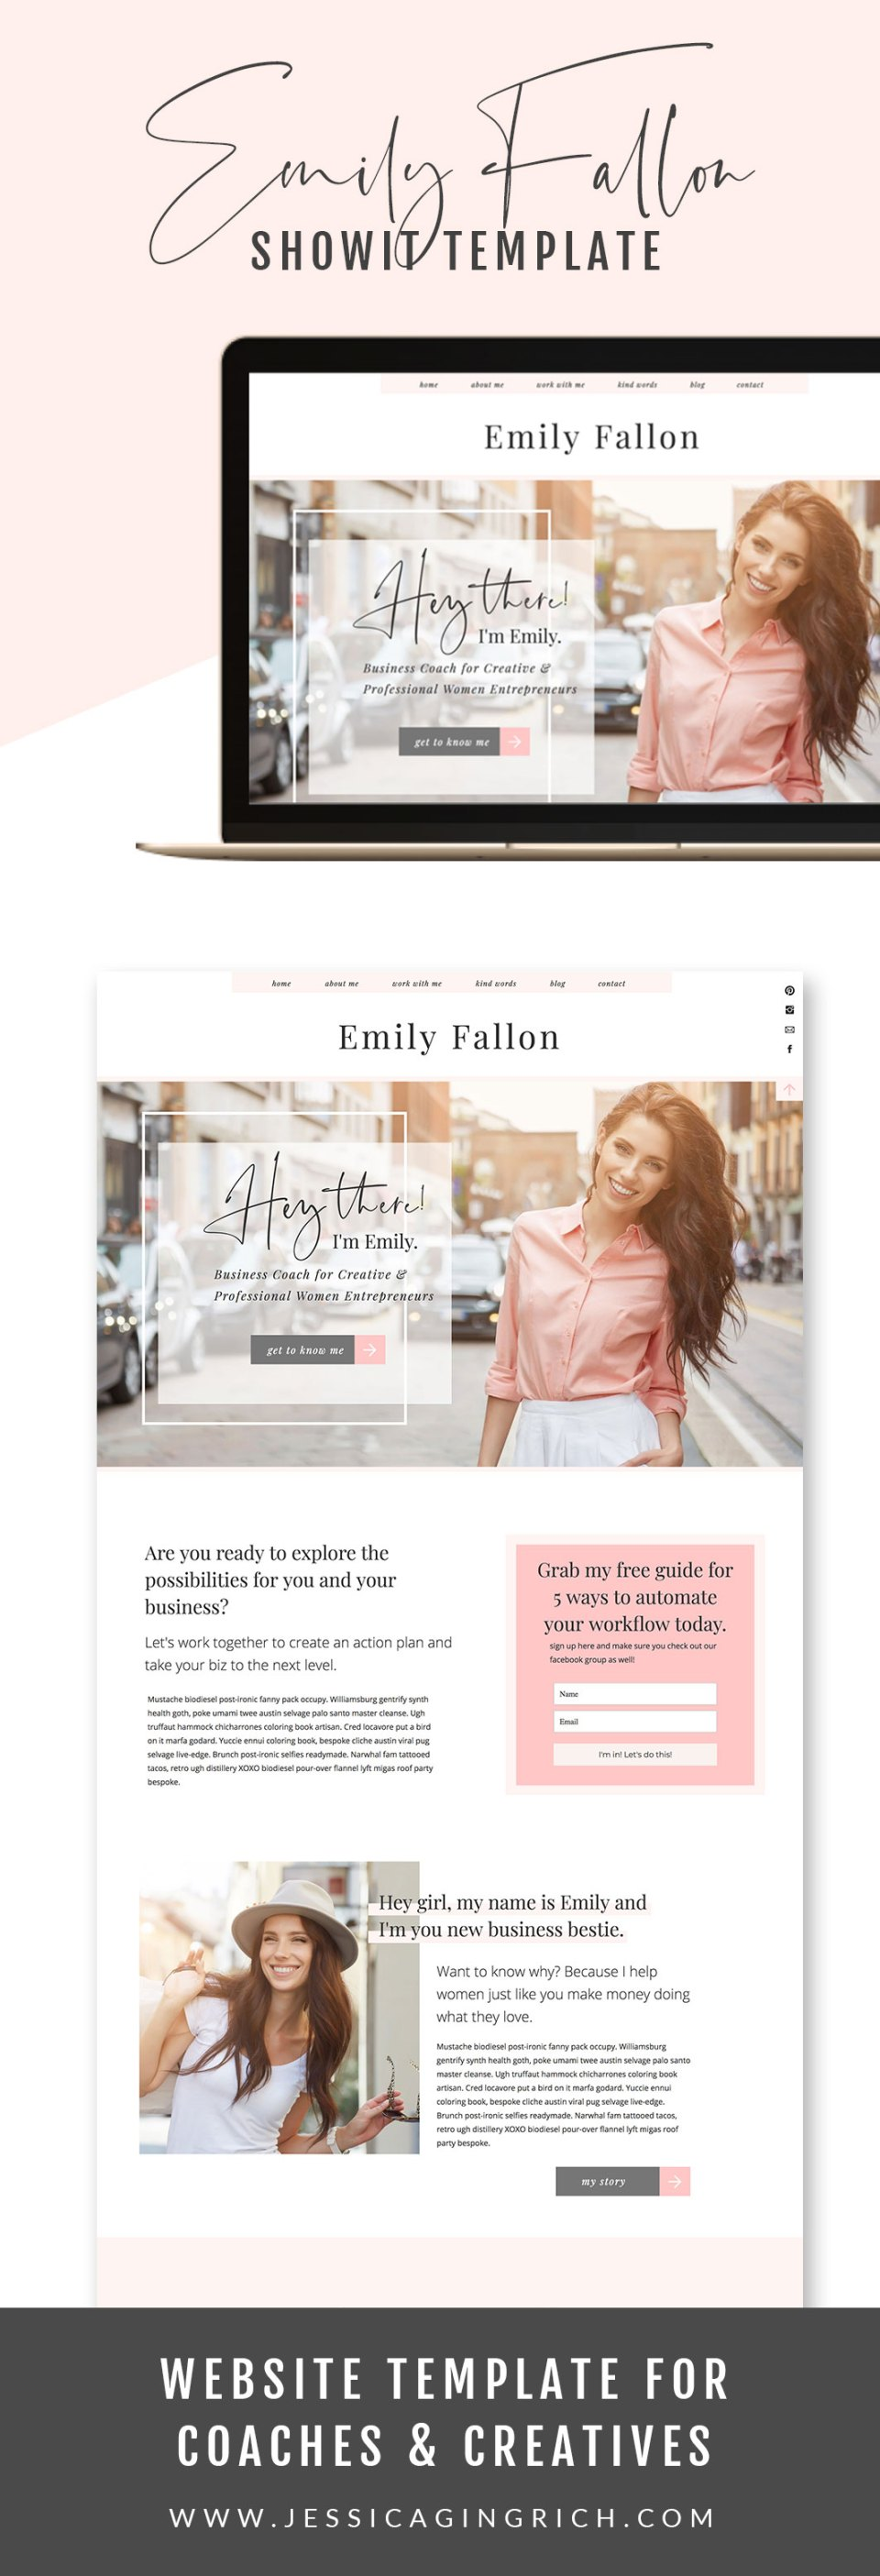 emilyfallon-showit-template-for-coaches-jessica-gingrich